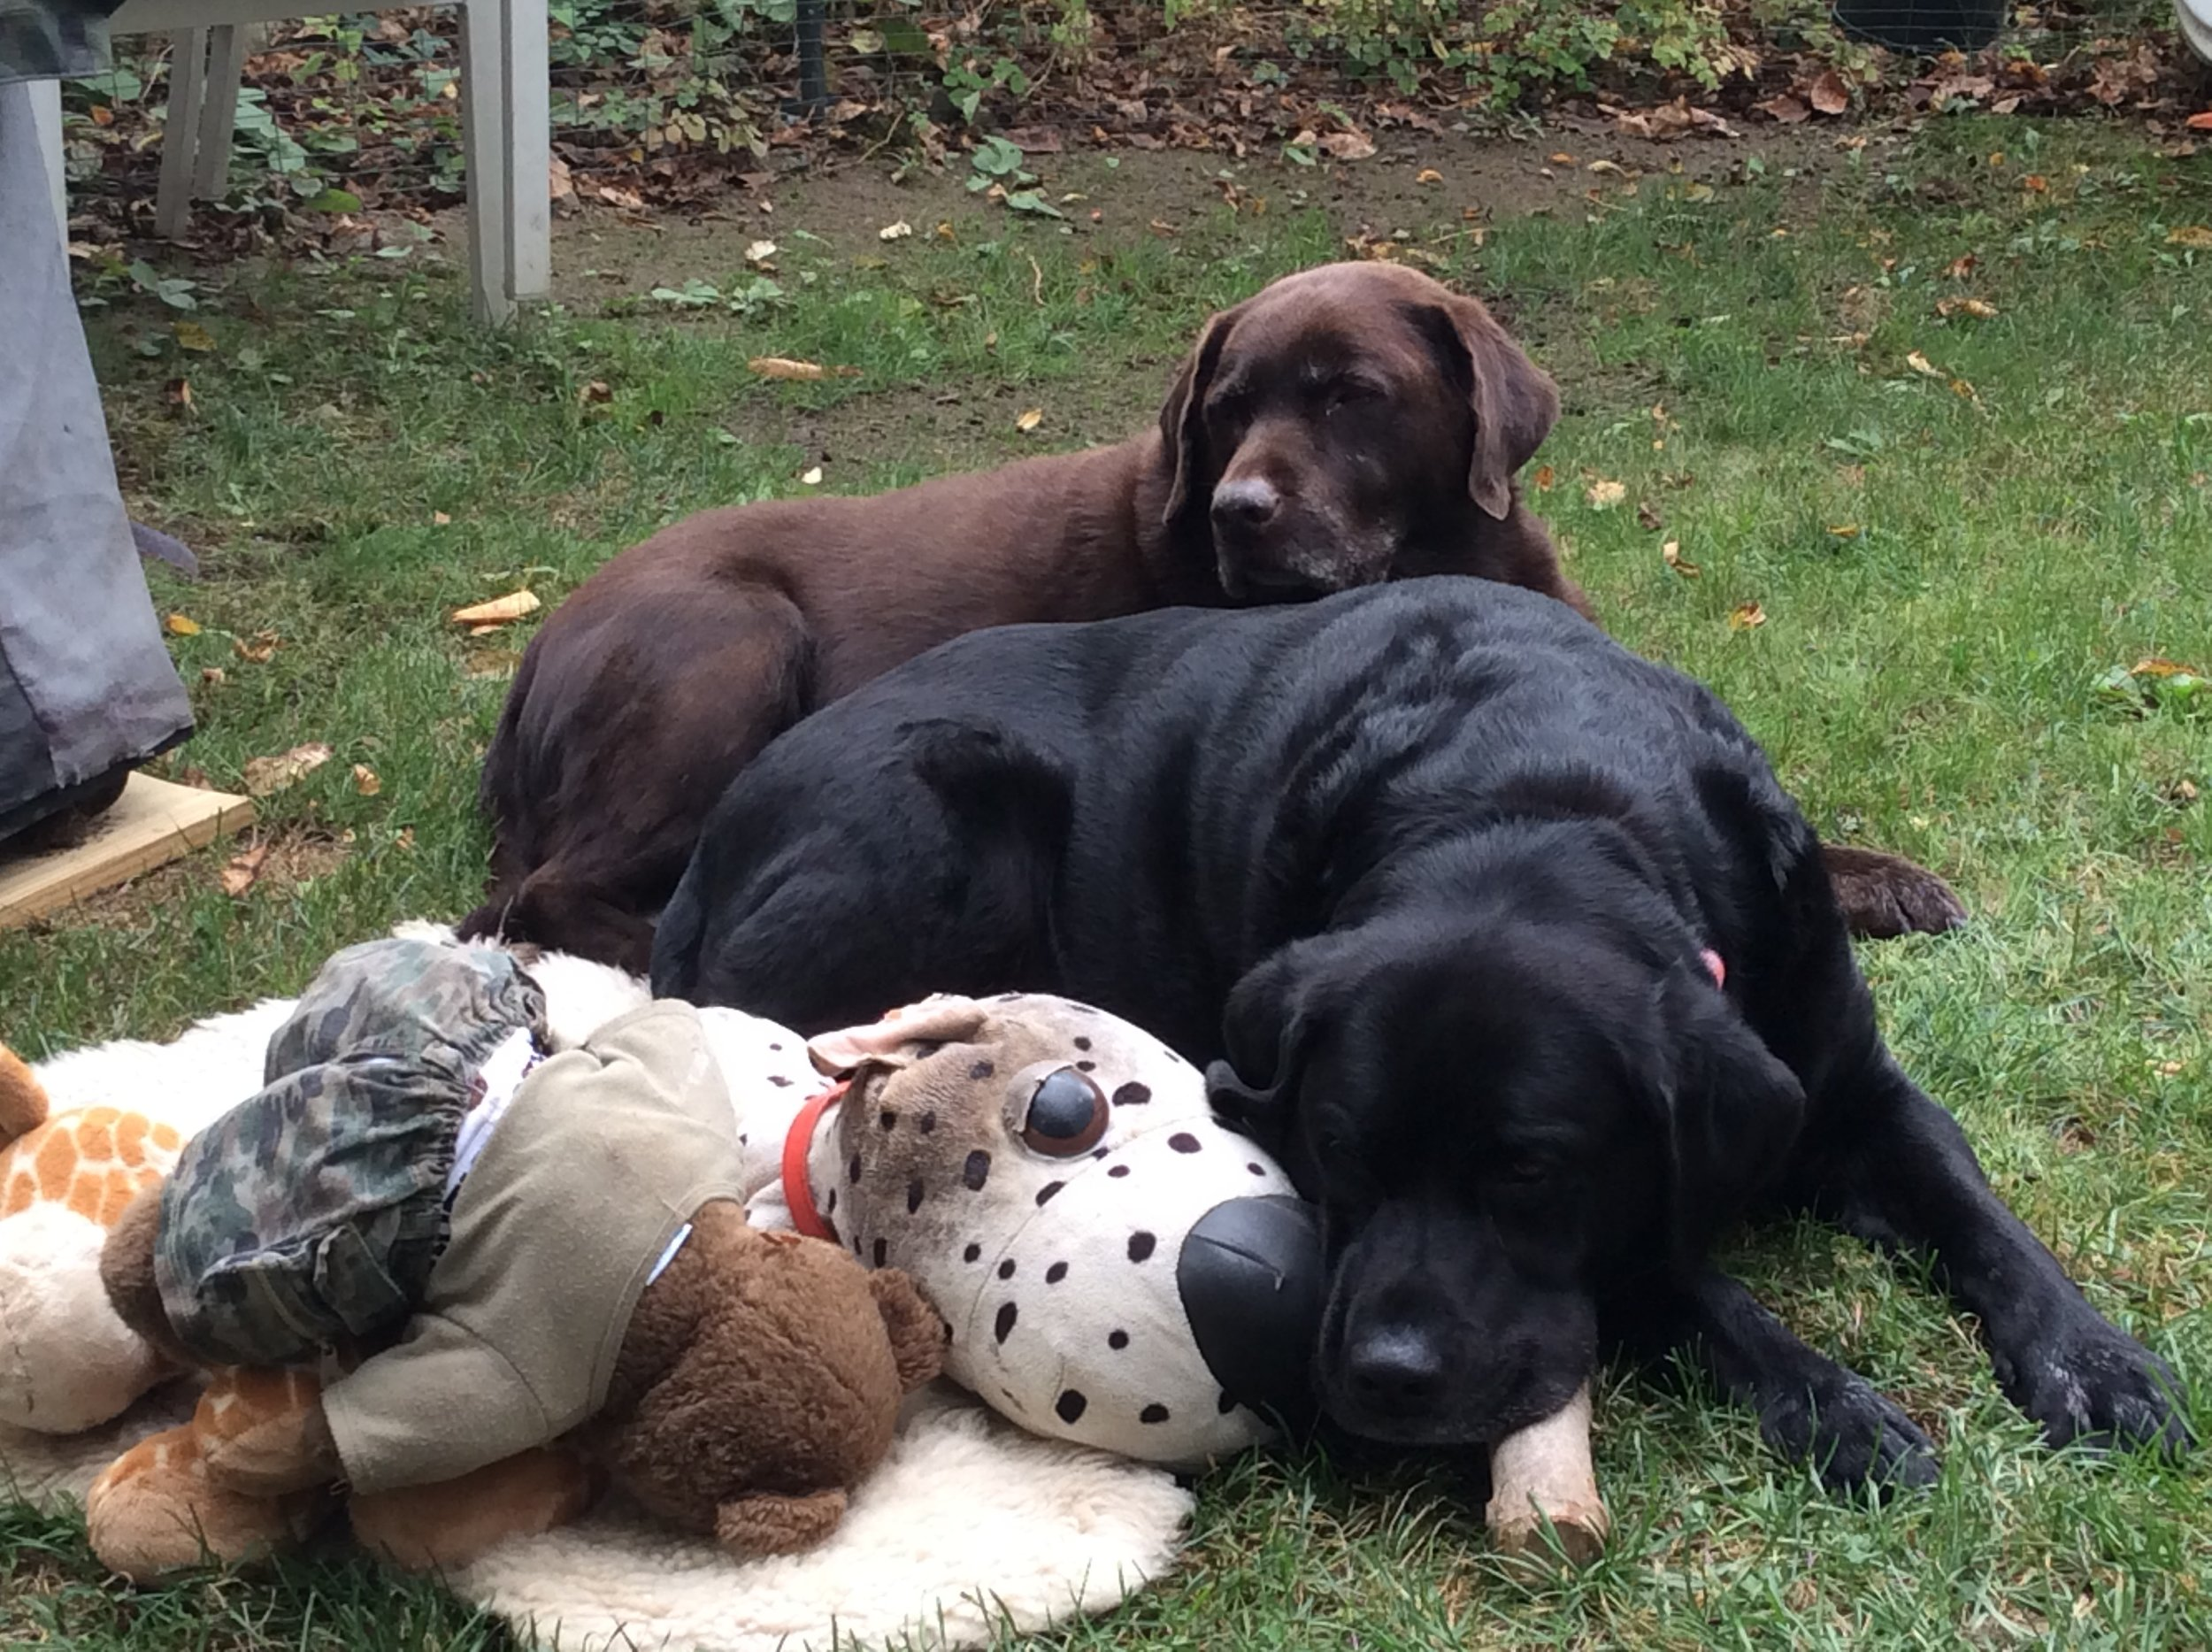 Jeb and Kazar, Julie and Dennis's labs are also part of the family